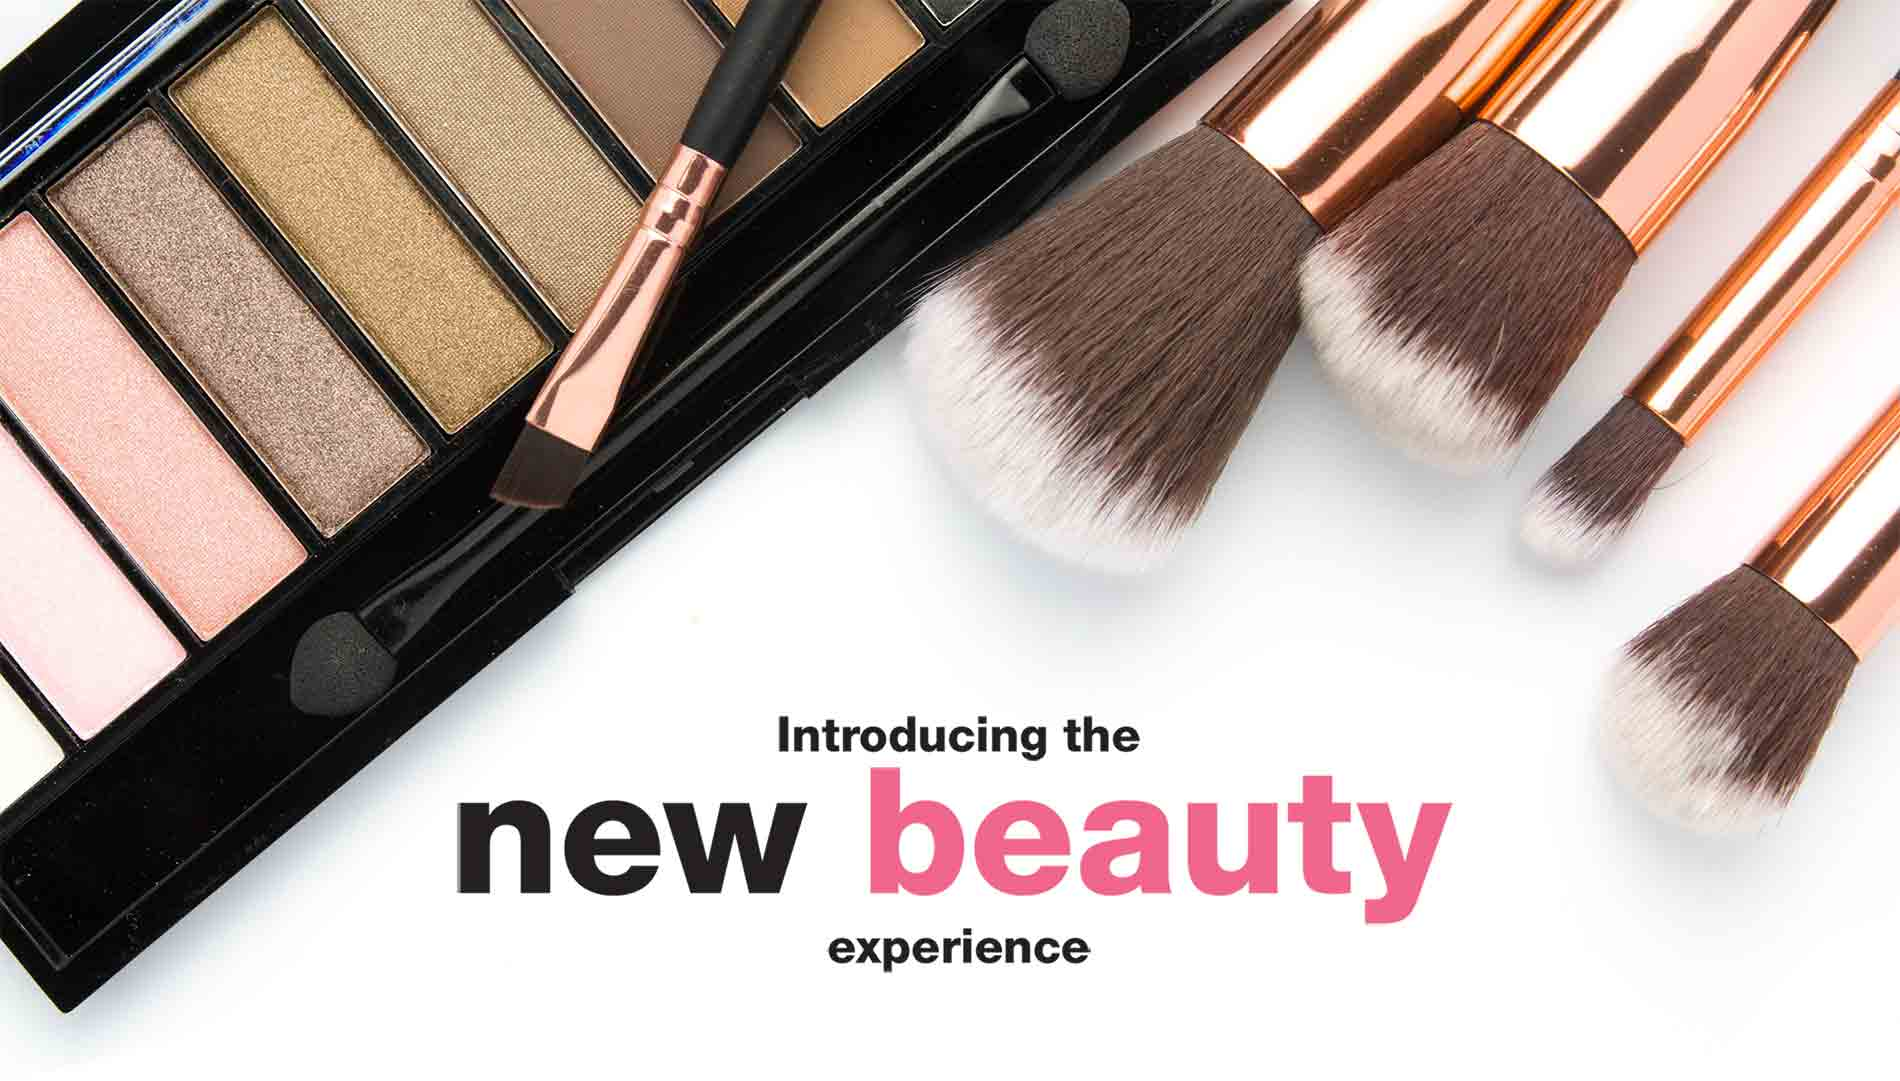 Introducing the new beauty experience.